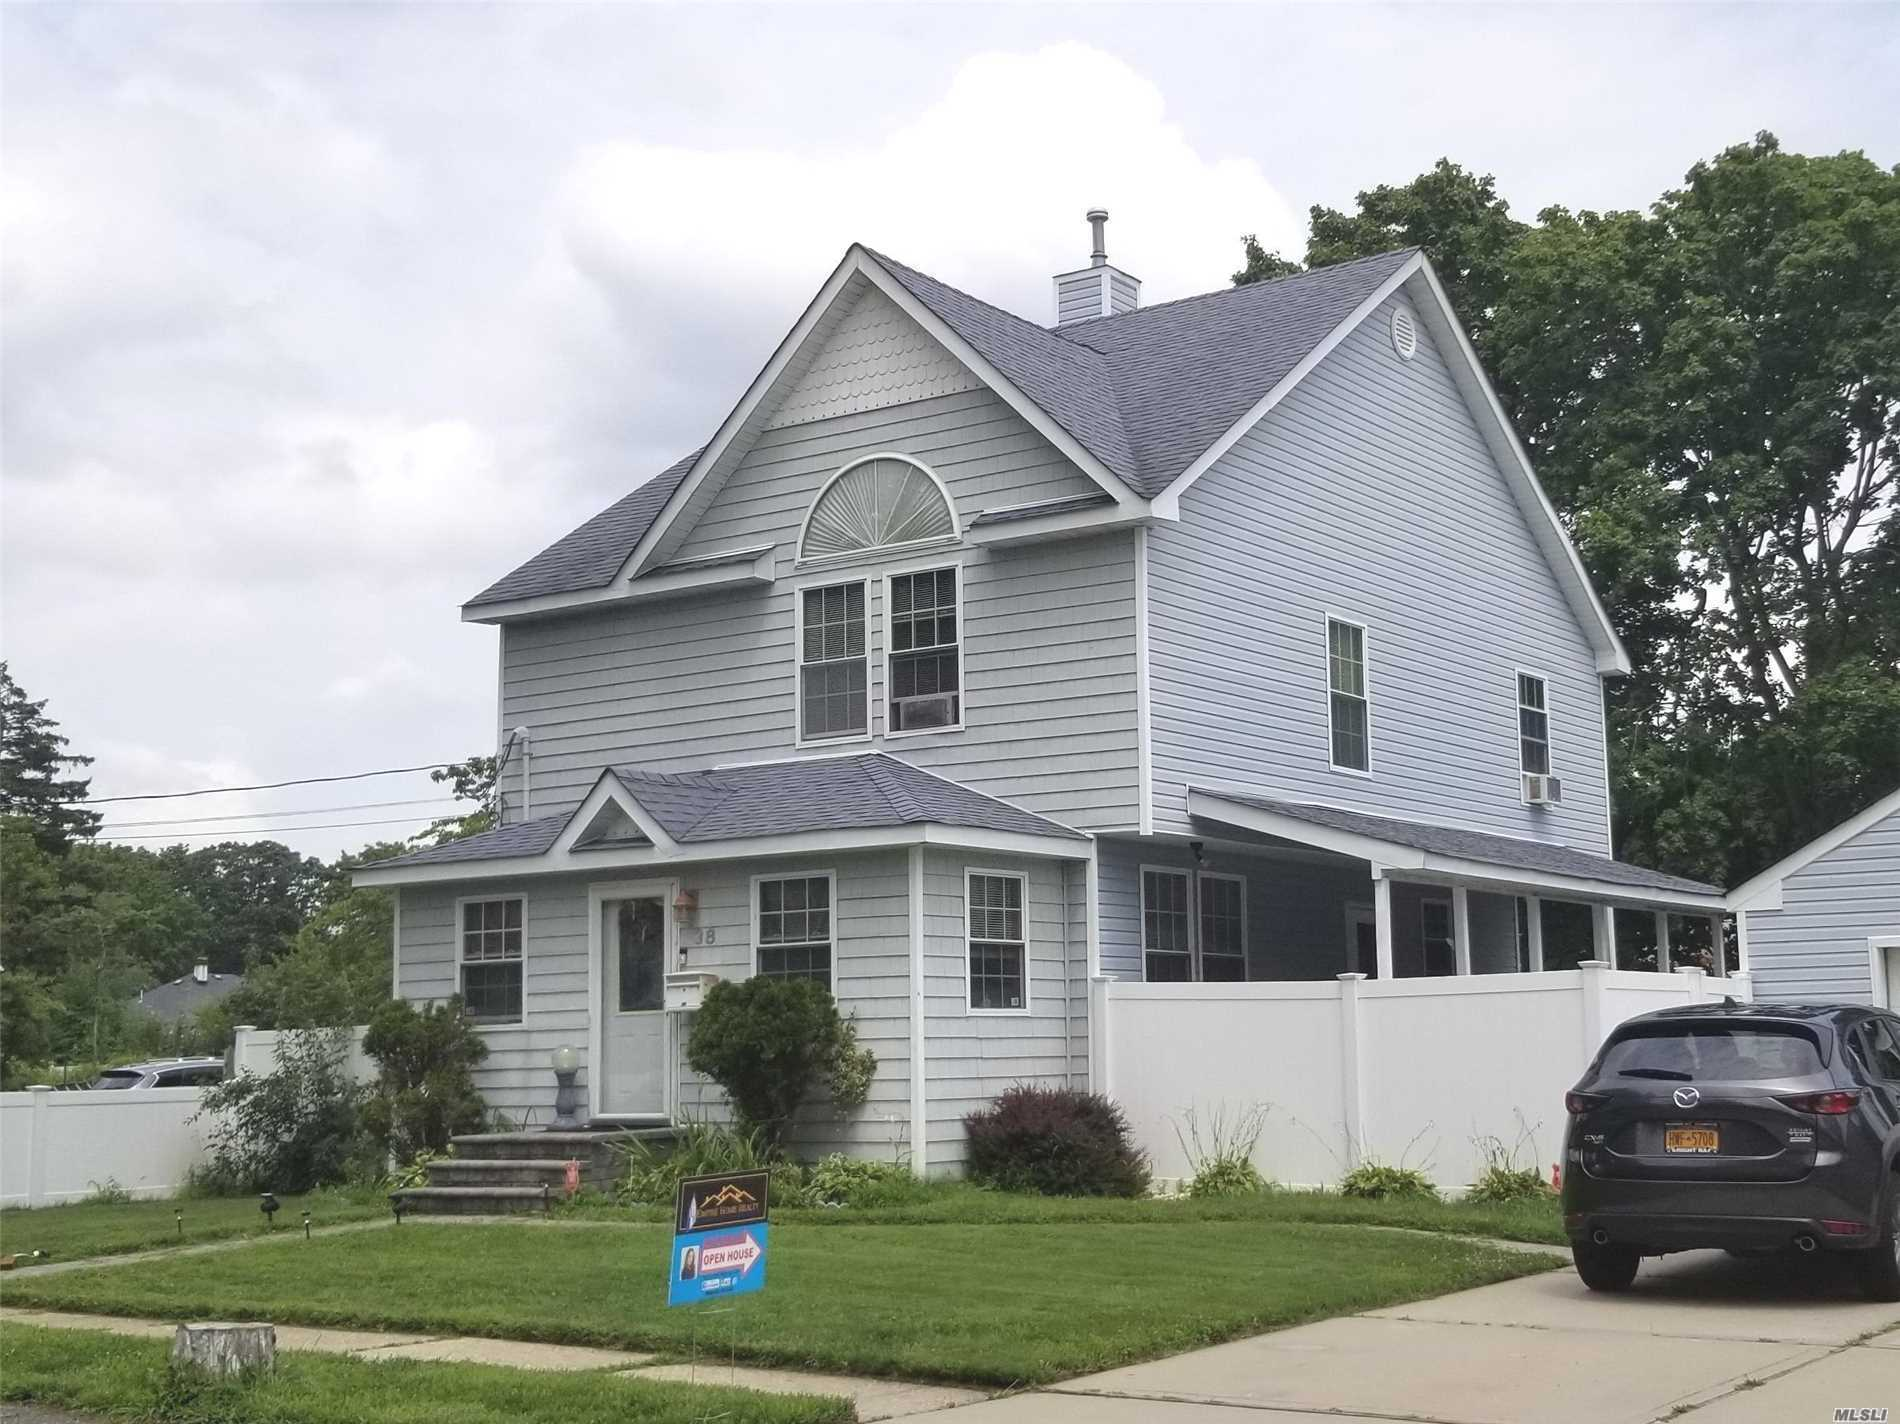 Photo of home for sale at 38 Peters Blvd, Central Islip NY